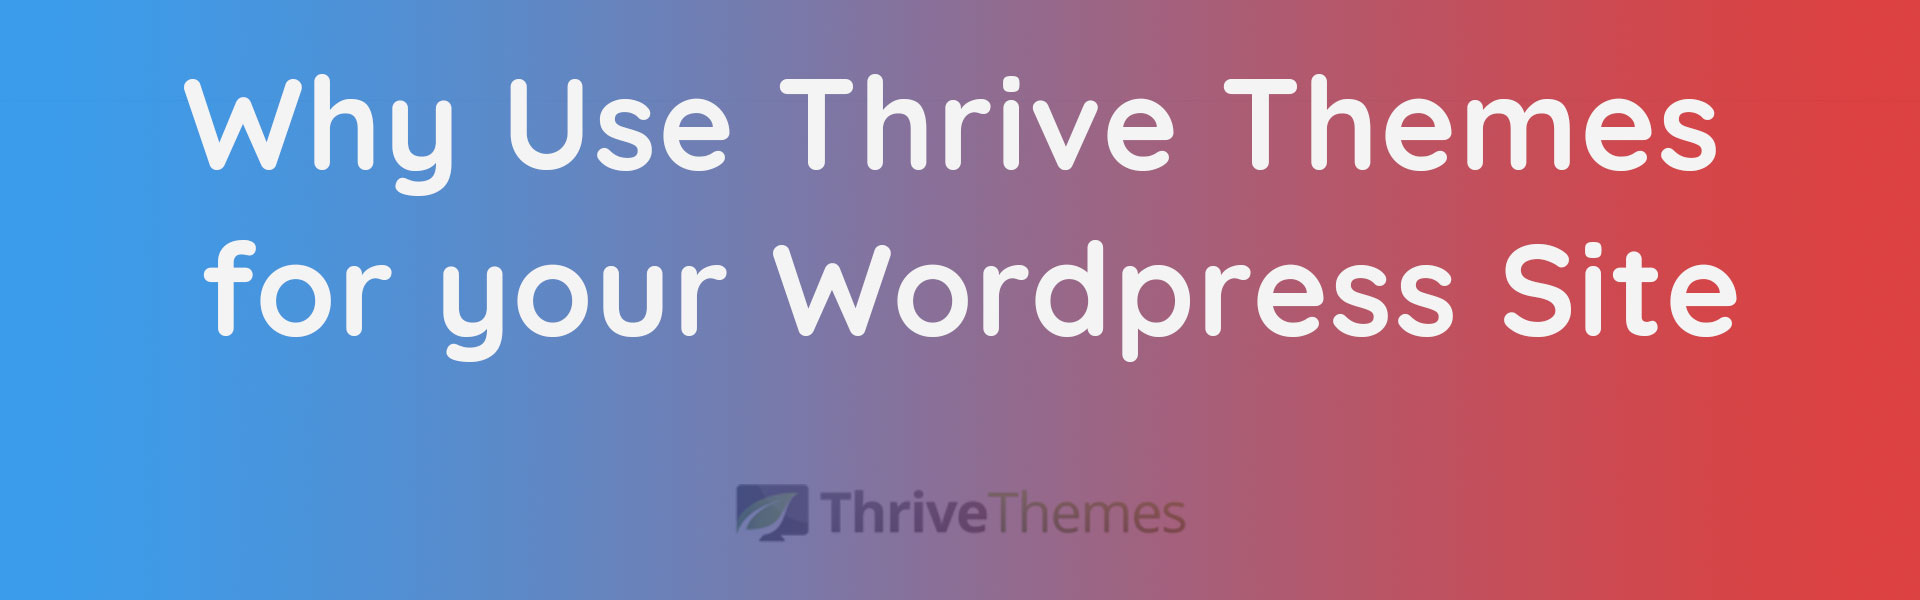 WordPress Themes  Work Coupons June 2020